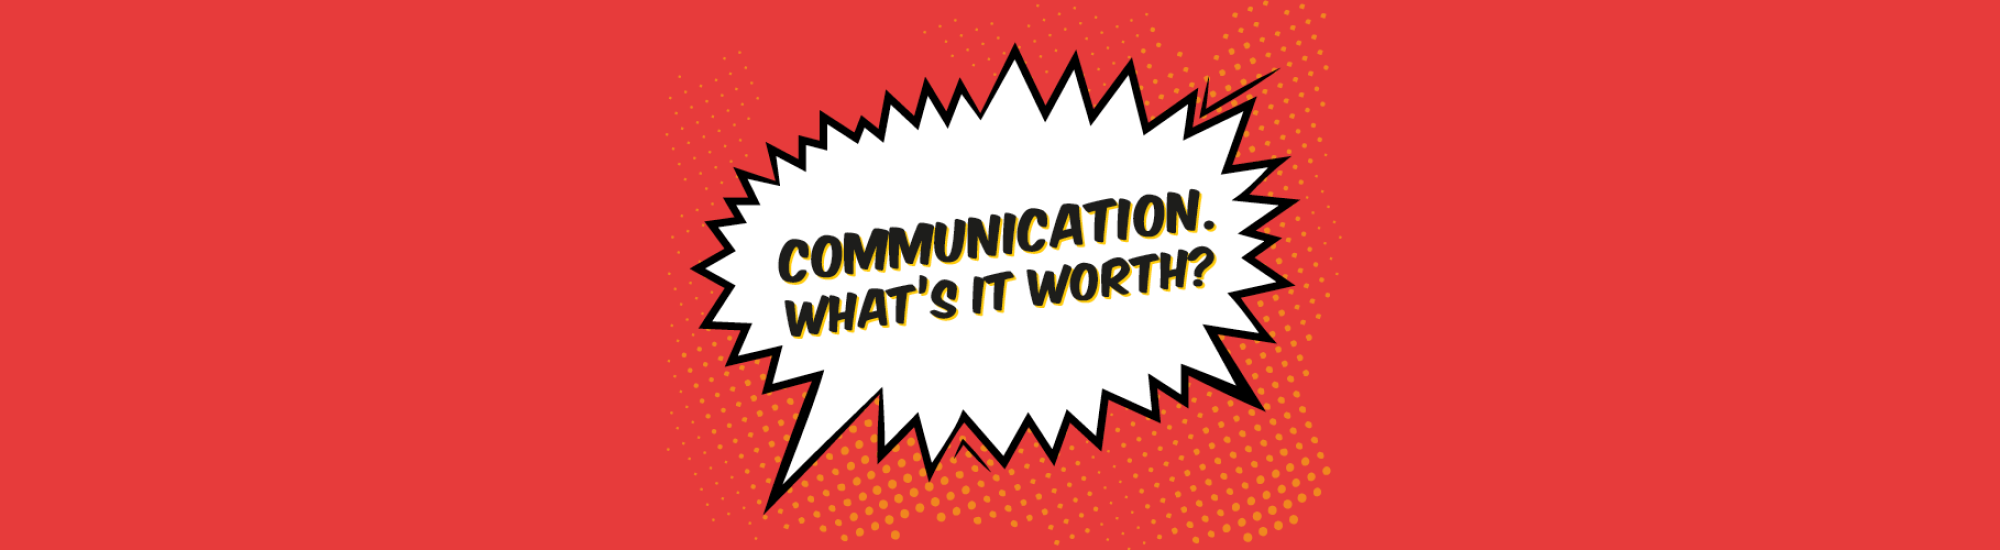 Communication Whats it worth HEAD